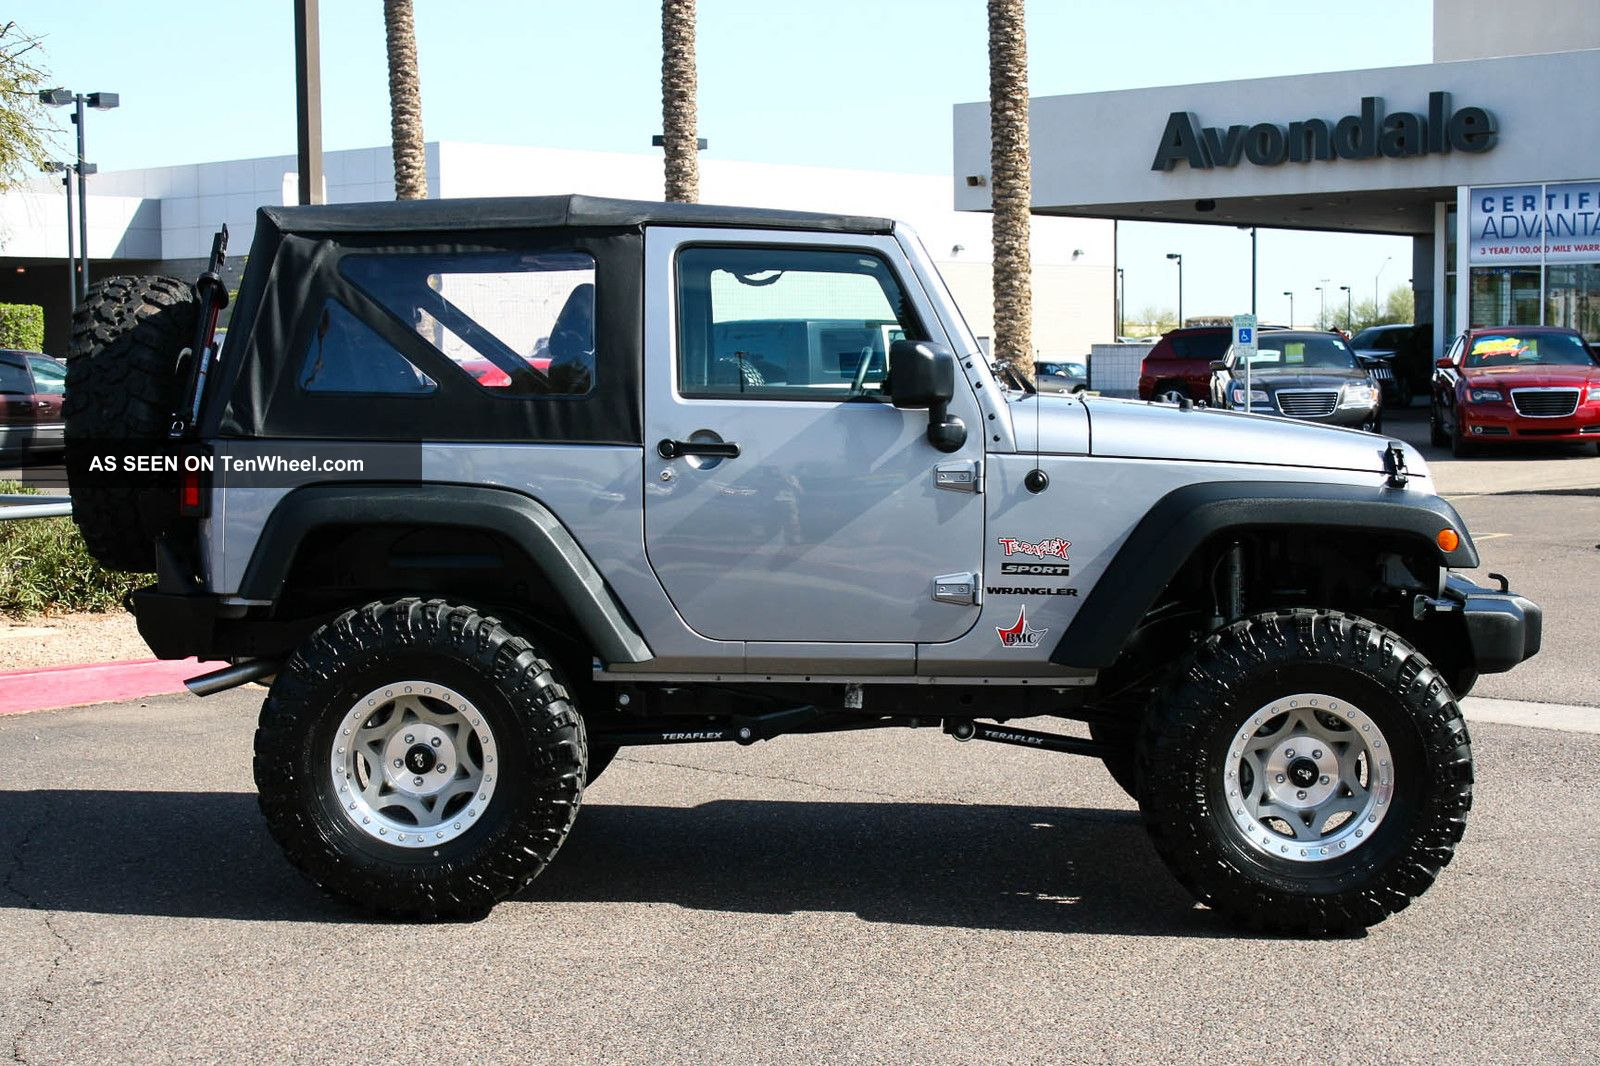 2013 jeep wrangler sport sport utility 2 door 3 6l wrangler photo 3. Cars Review. Best American Auto & Cars Review